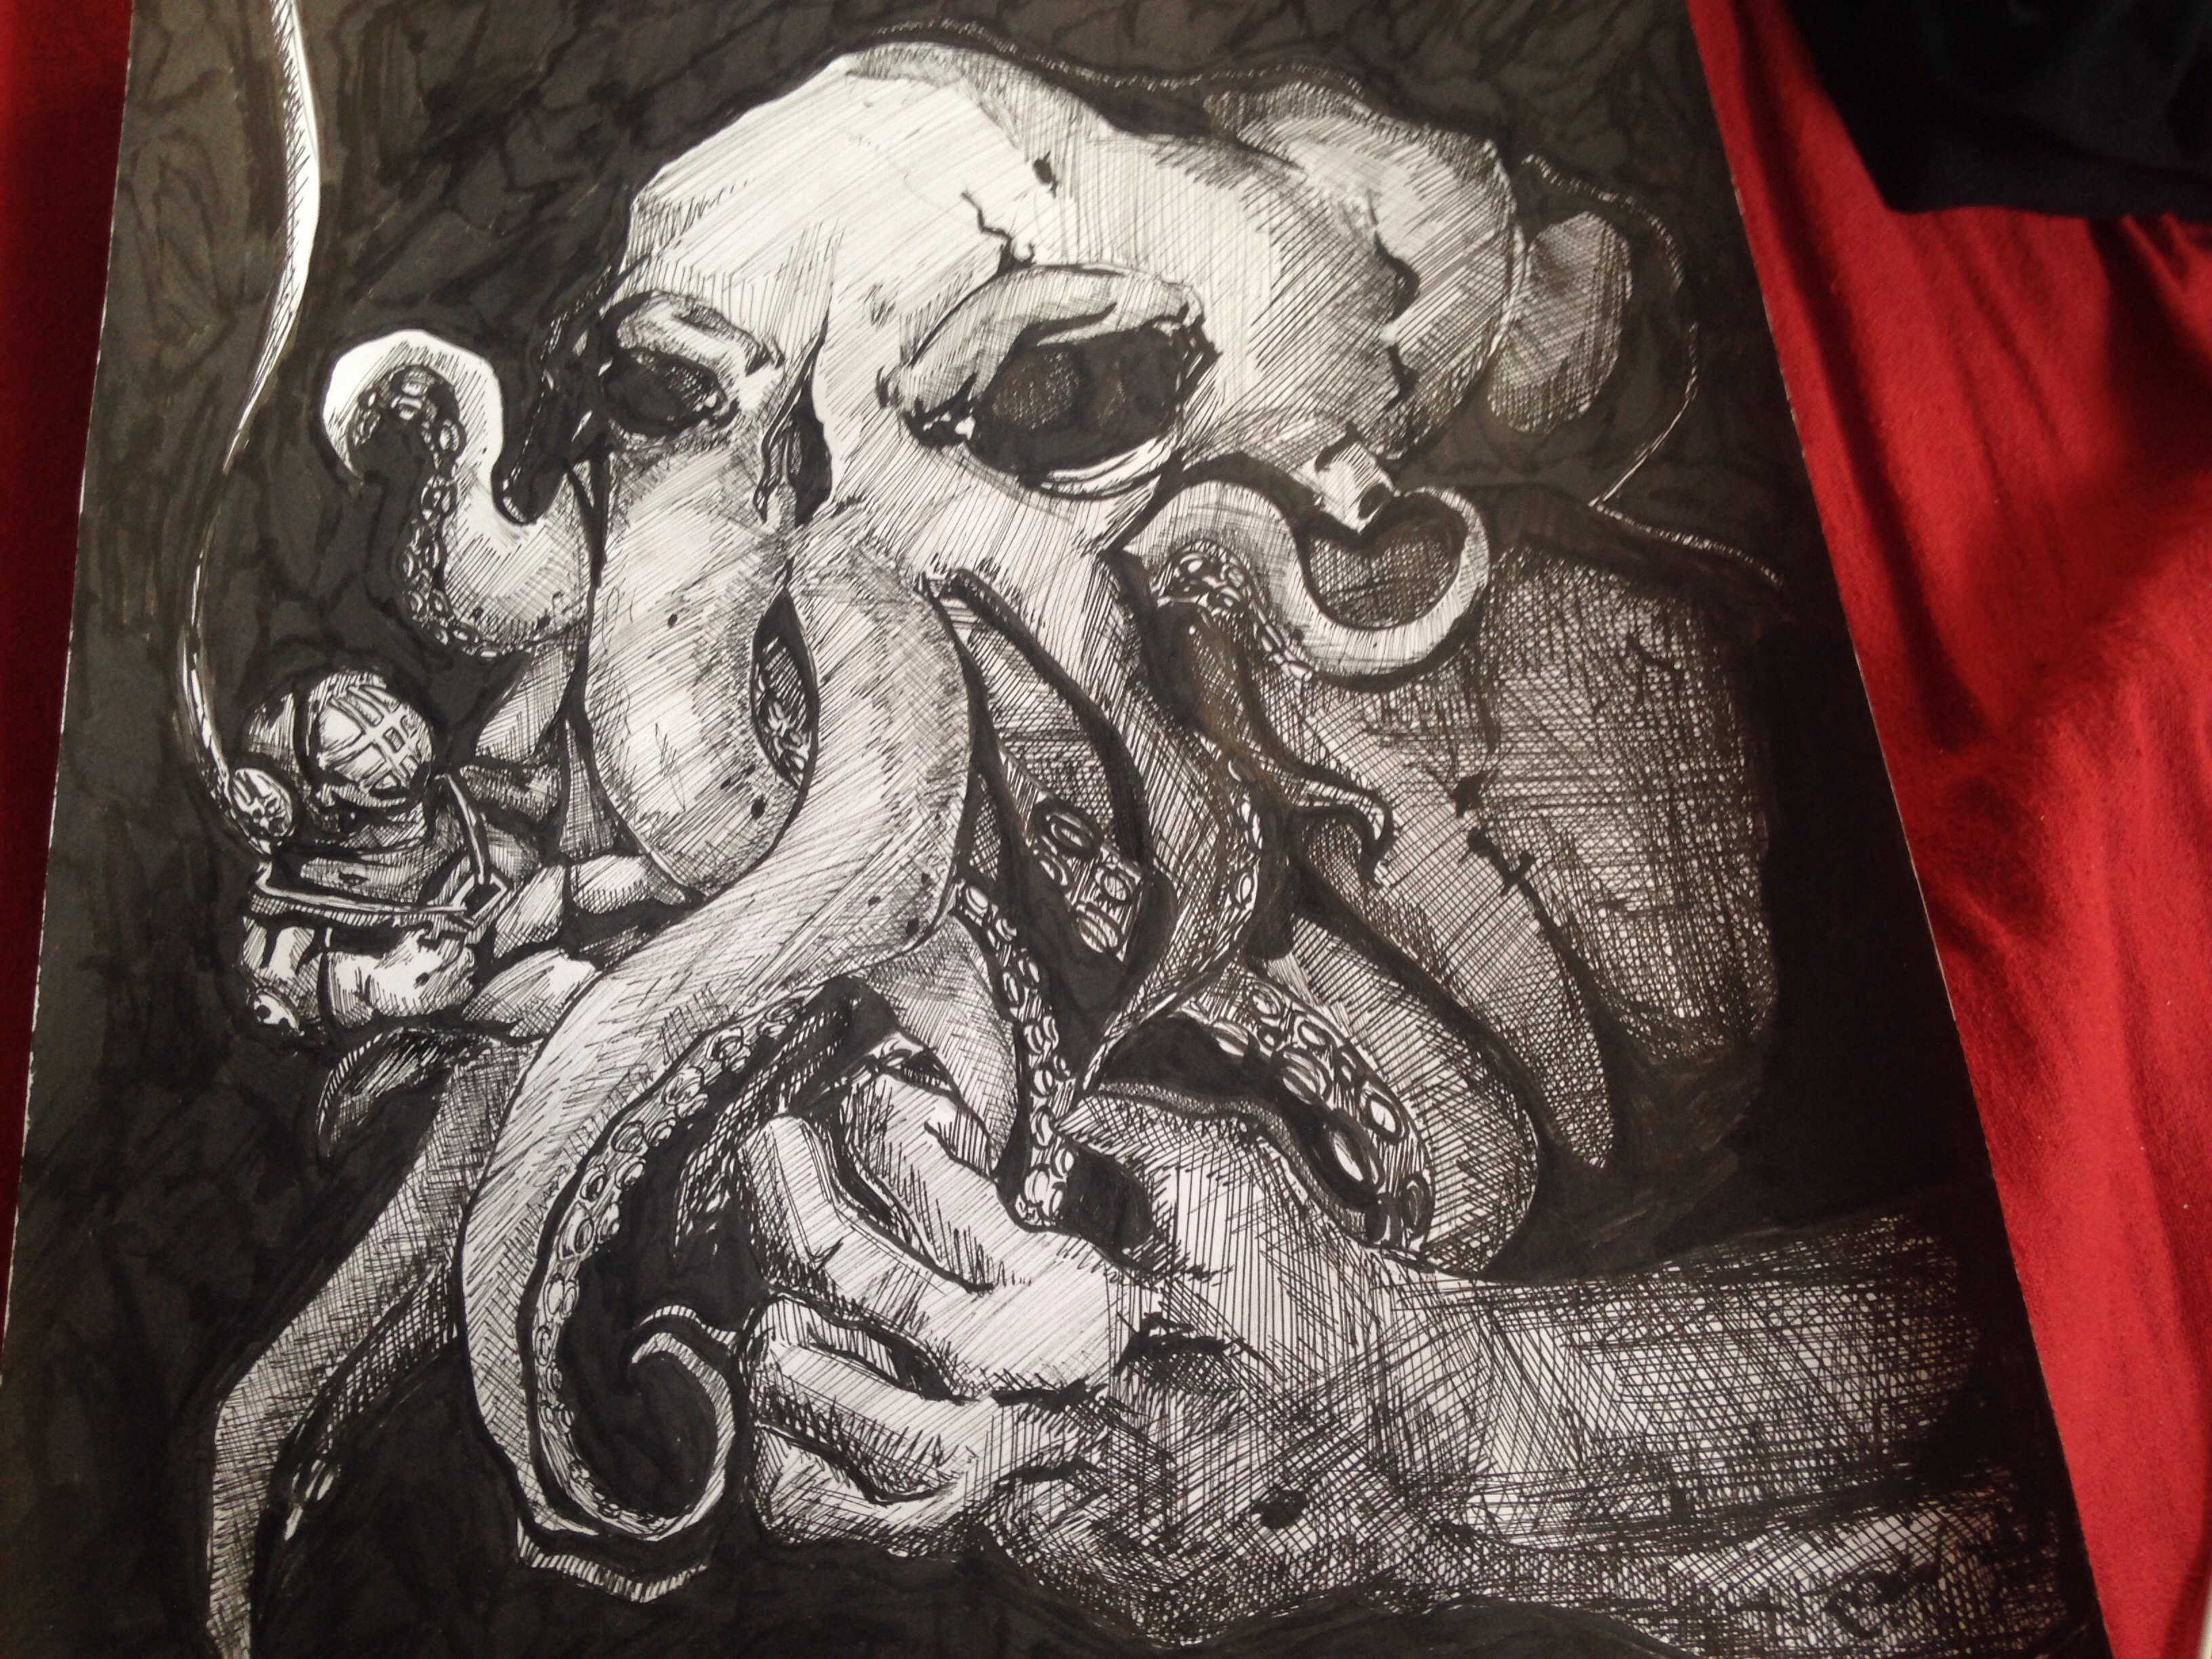 Cthulhu and scuba diver